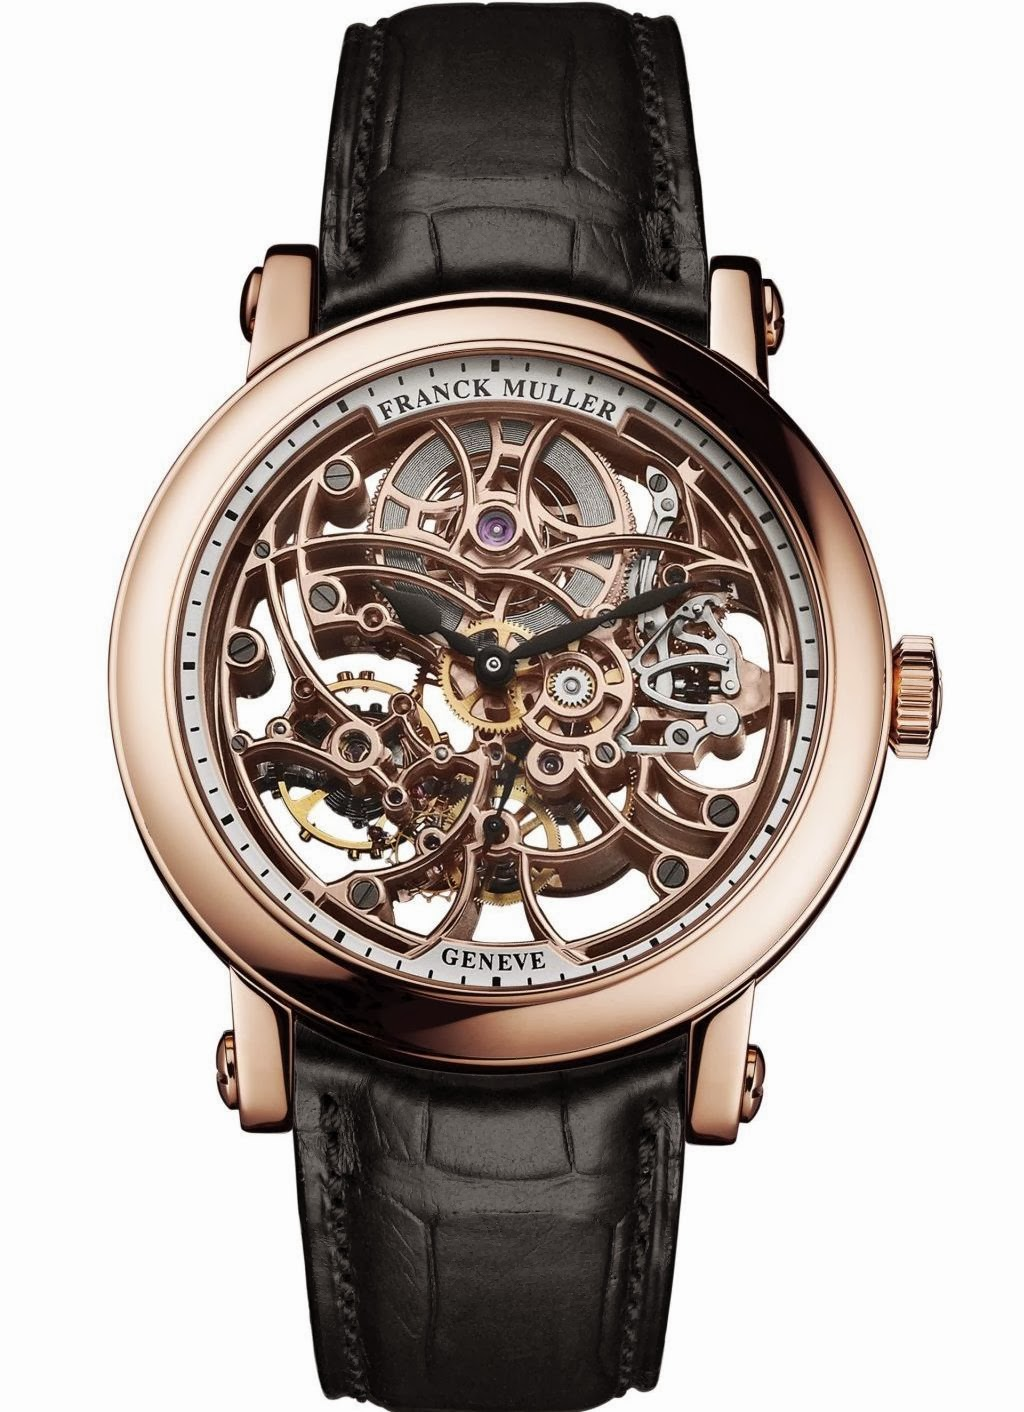 Franck Muller 7 Days Power Reserve Skeleton replica